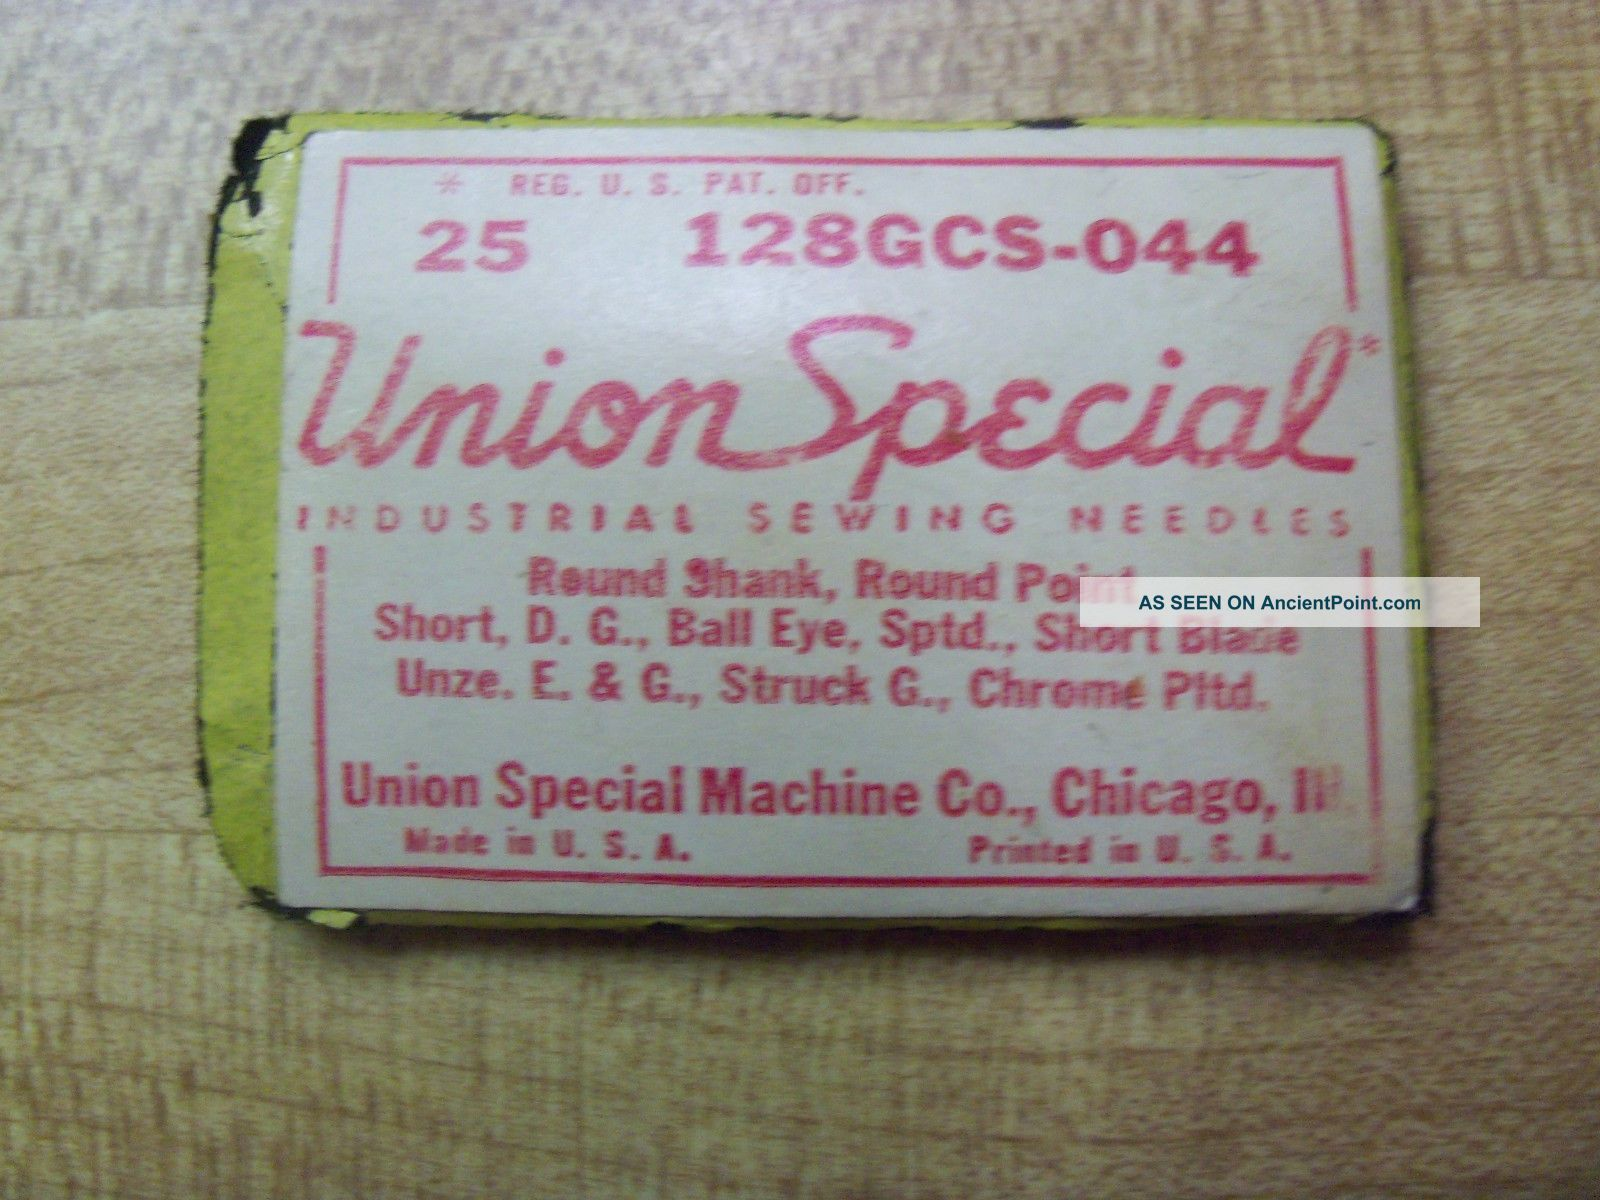 25 Union Special 128gcs 149x3 Size 18 Industrial Sewing Machine Needle Yamato Needles & Cases photo